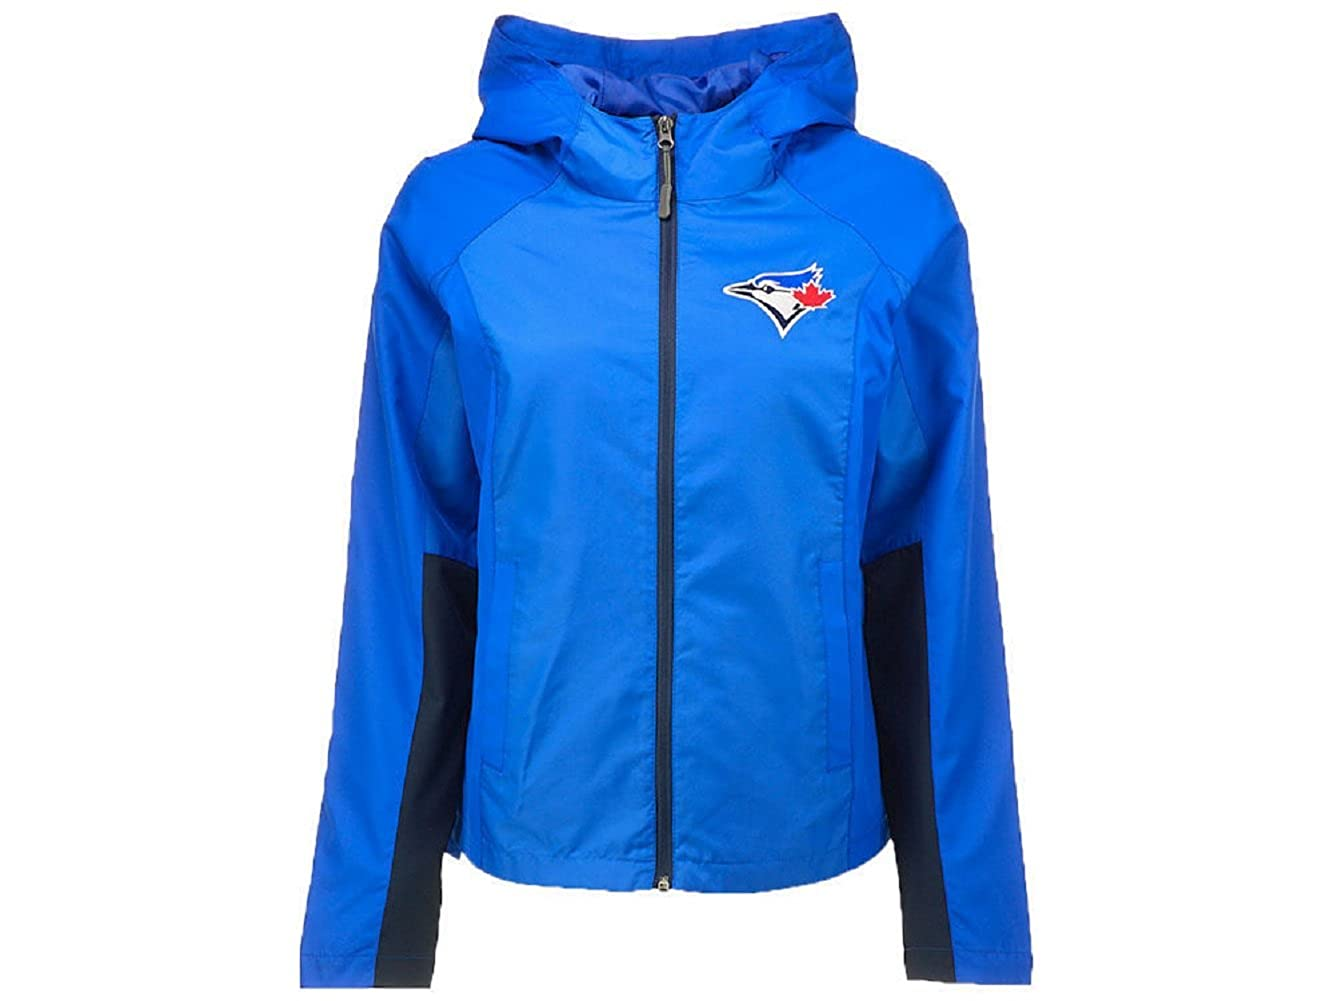 Toronto Blue Jays Women's Force Play Jacket New #20912157 - Sz Small (Small FIT) Aeropostale